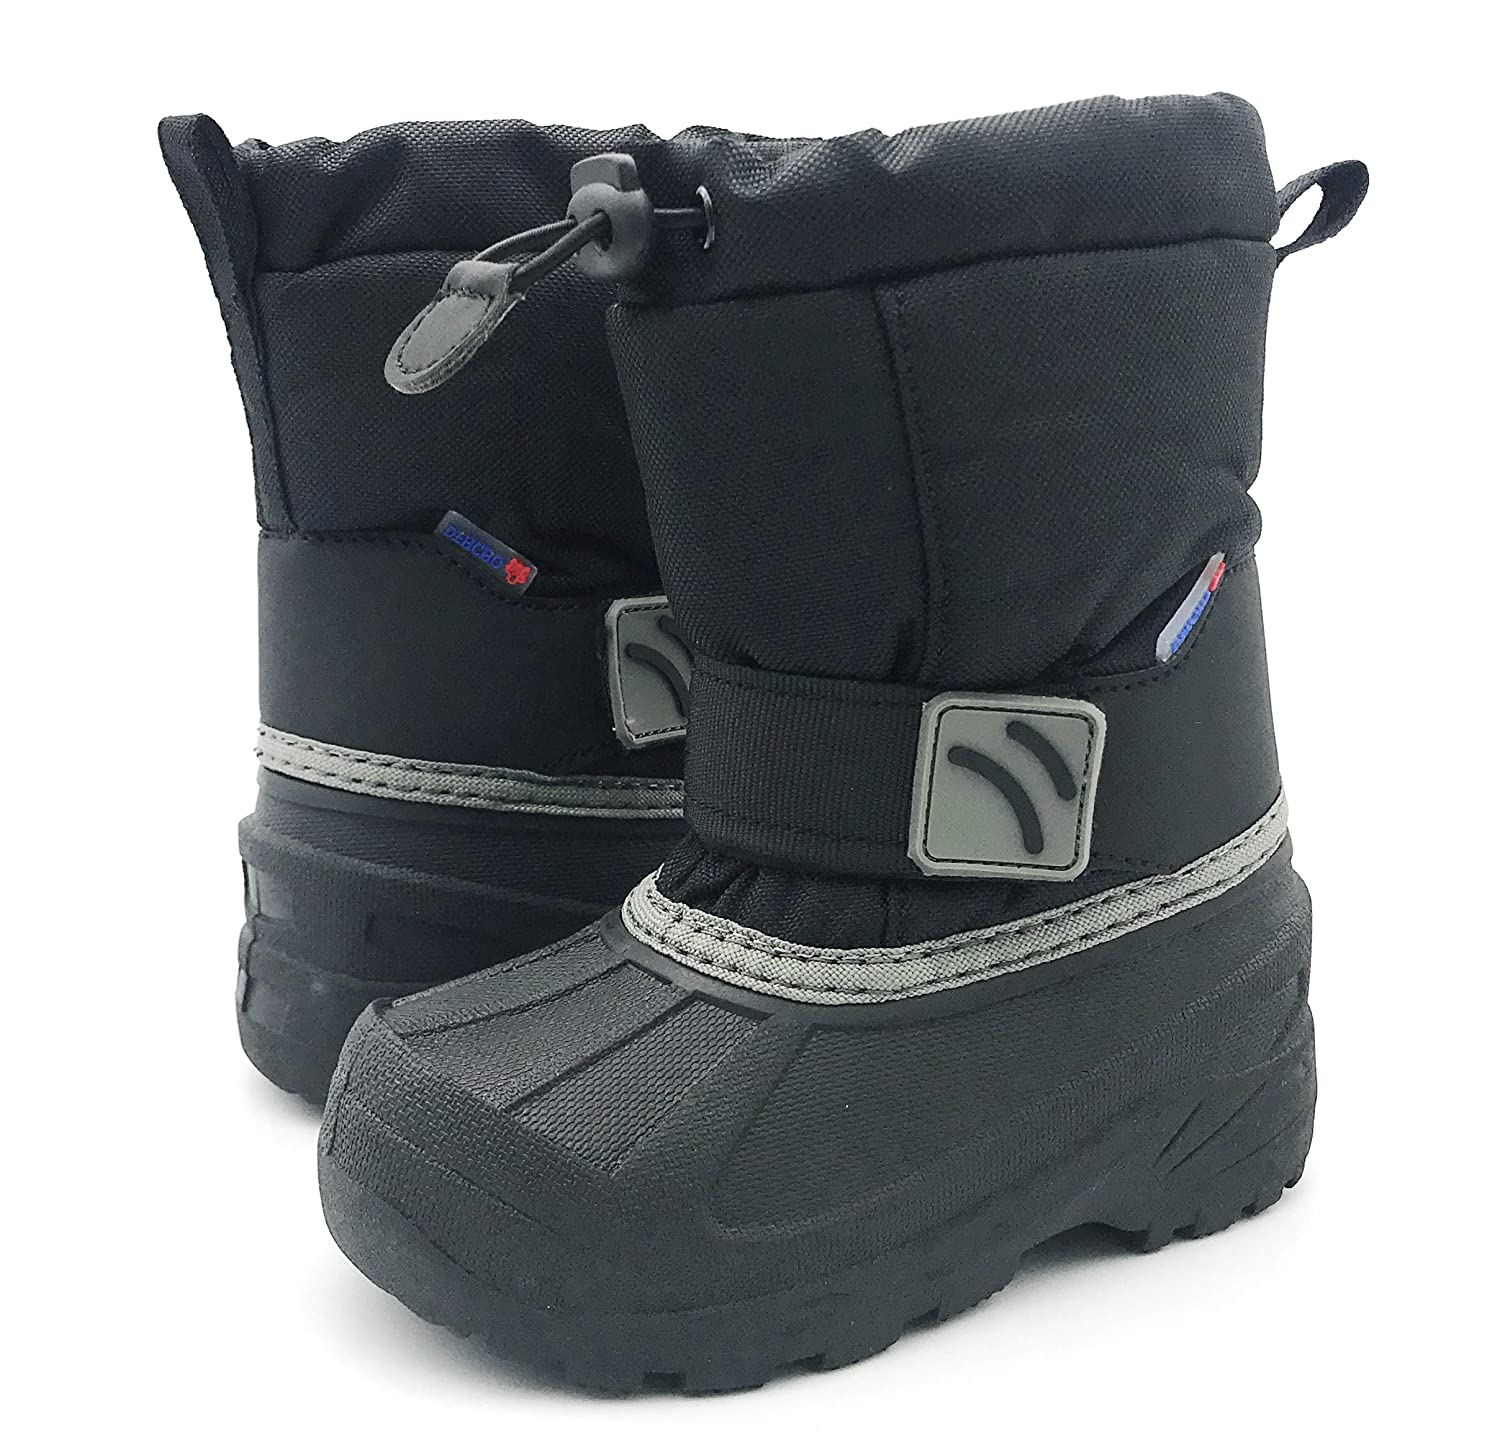 Toddler//Little Kids//Big Kids DEHCHO Girls and Boys Winter Snow Boots Waterproof and Warm All Weather Boots for Children